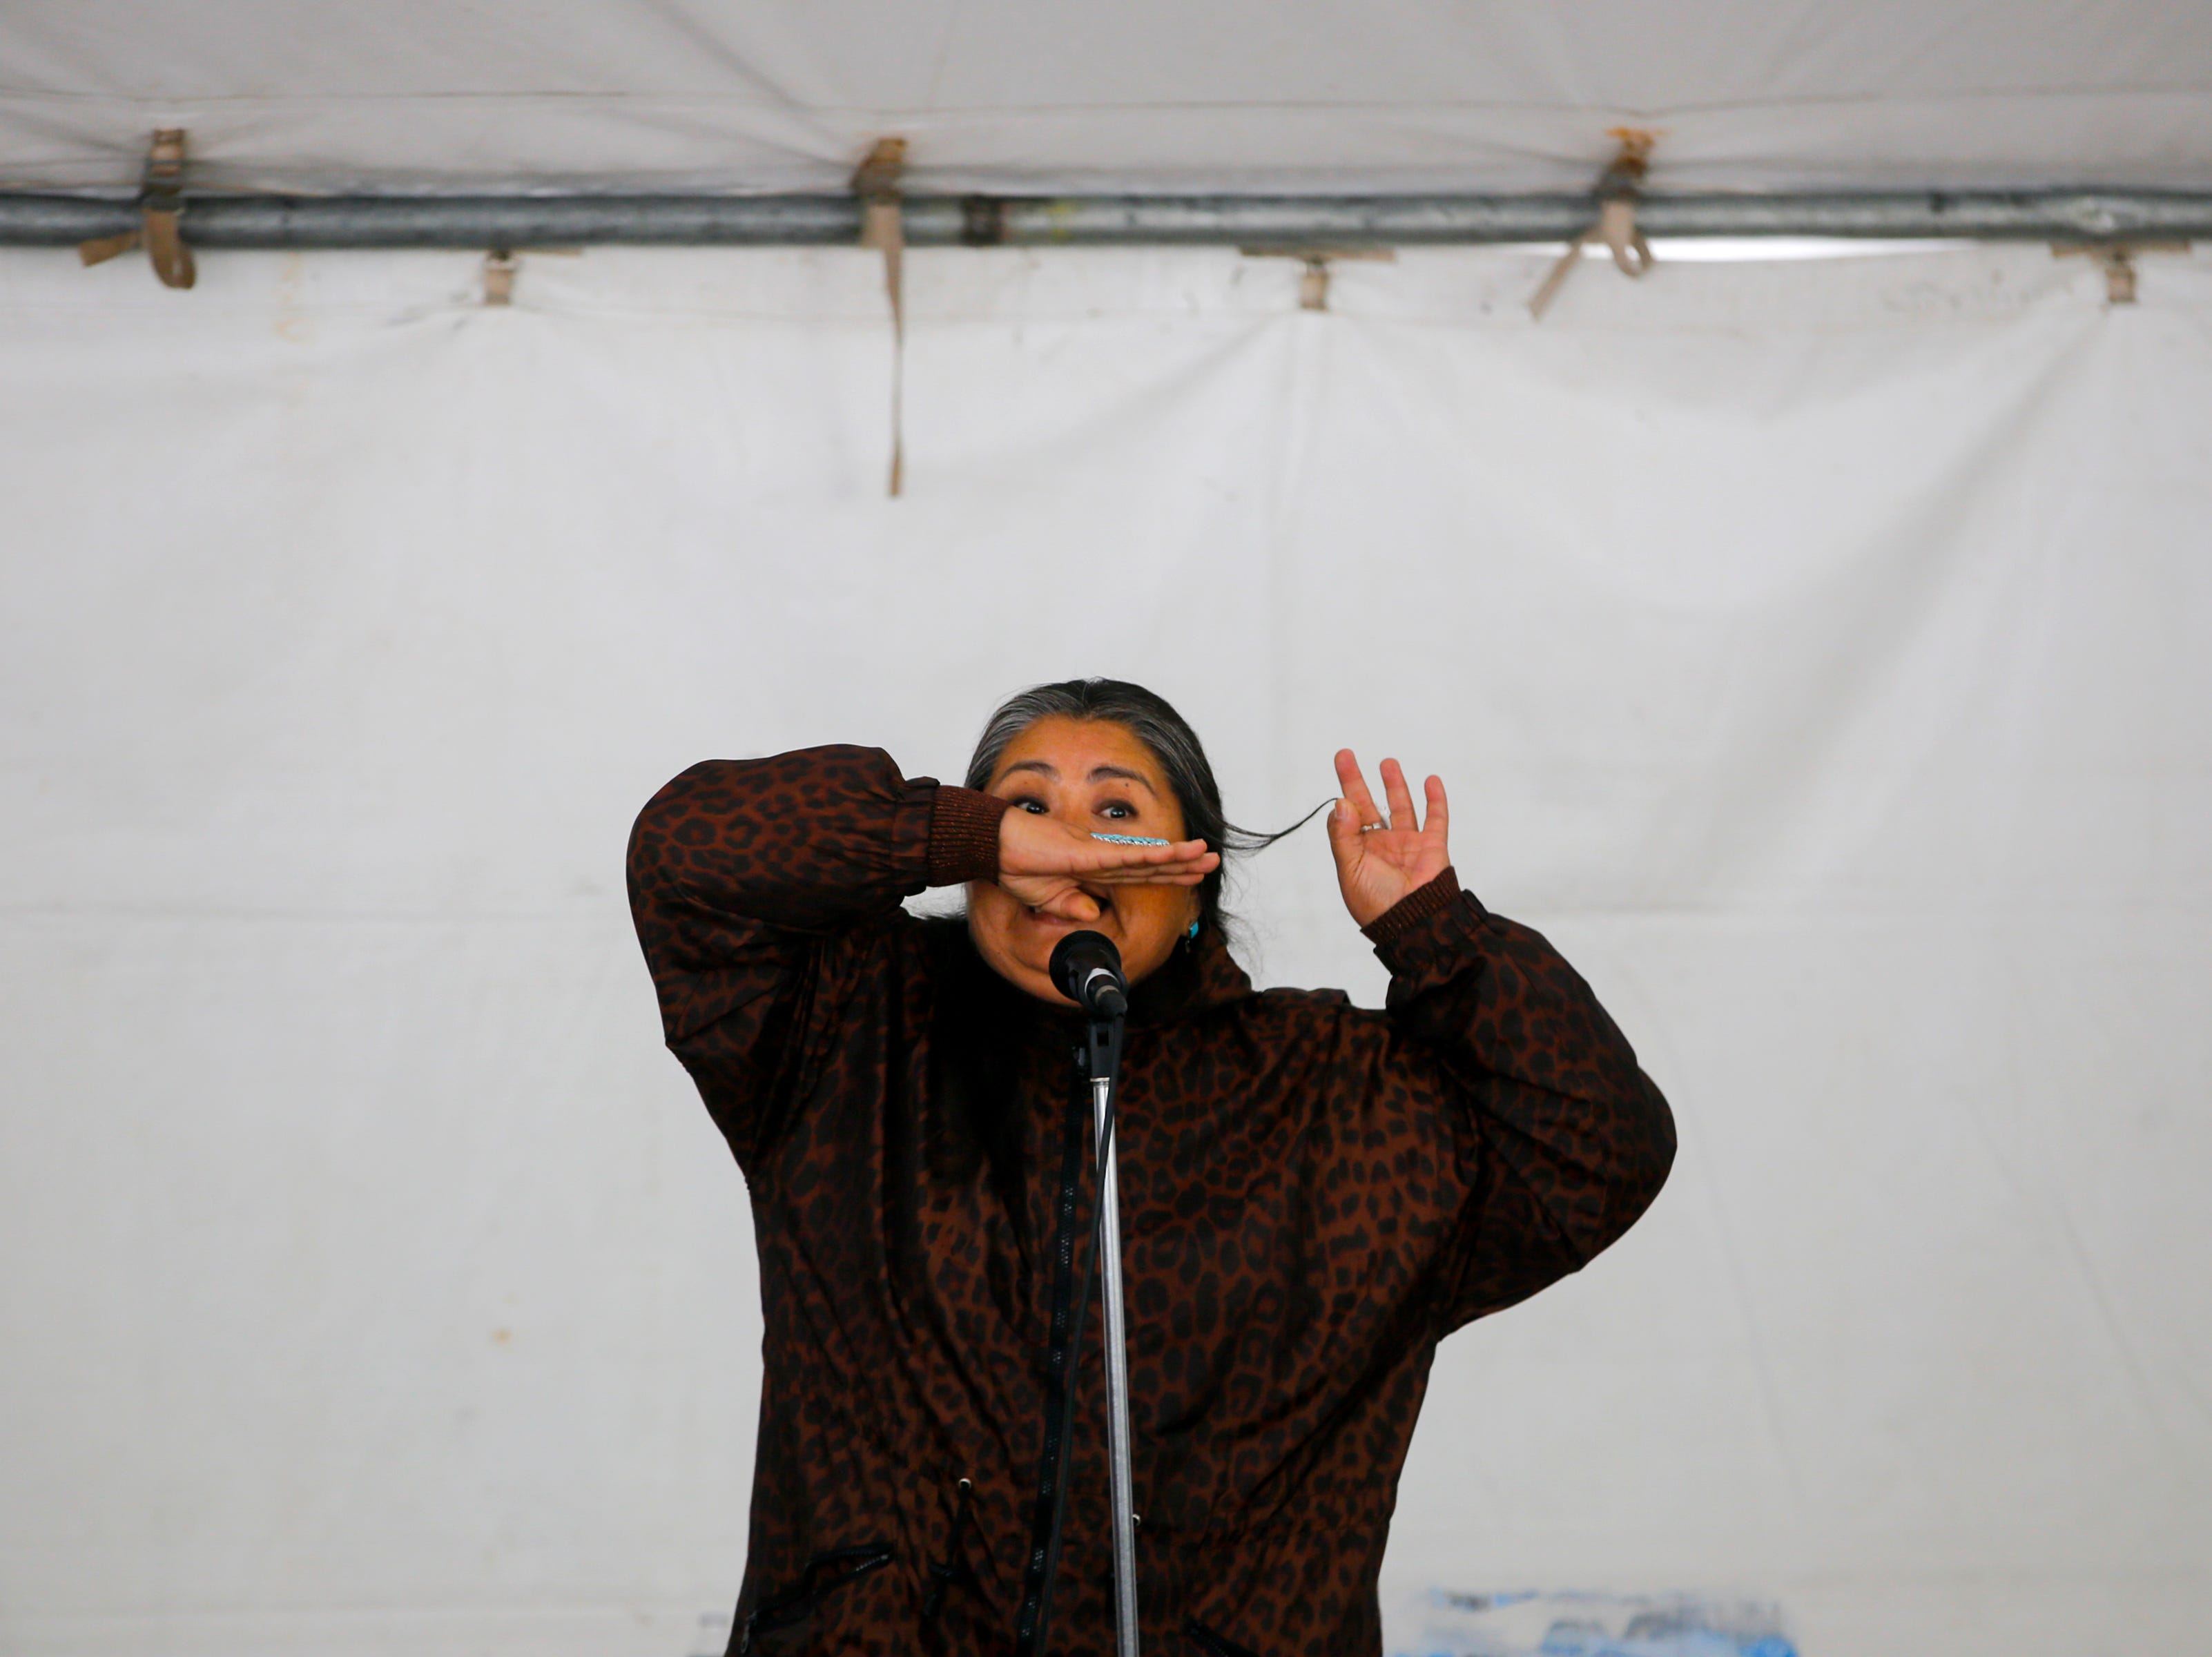 Storyteller Sunny Dooley from Chichiltah Chapter tells a story, Friday, Oct. 12, 2018 during the annual Four Corners Storytelling Festival at Berg Park in Farmington.